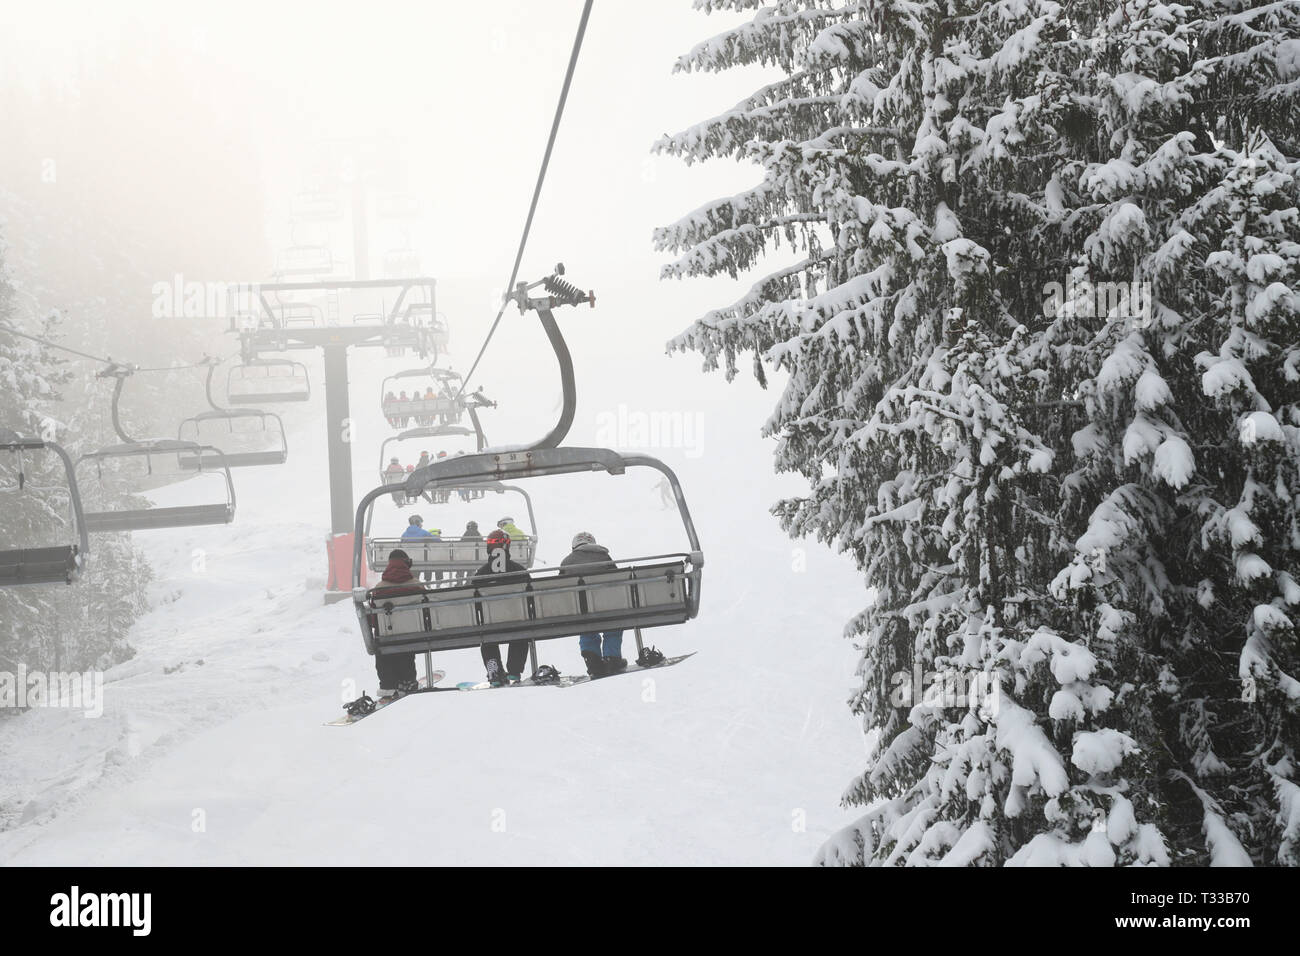 Sellnäs, Sweden 20190406 Skier in a wintry and foggy Romme alpine just outside Borlänge during Saturday. Photo Jeppe Gustafsson - Stock Image